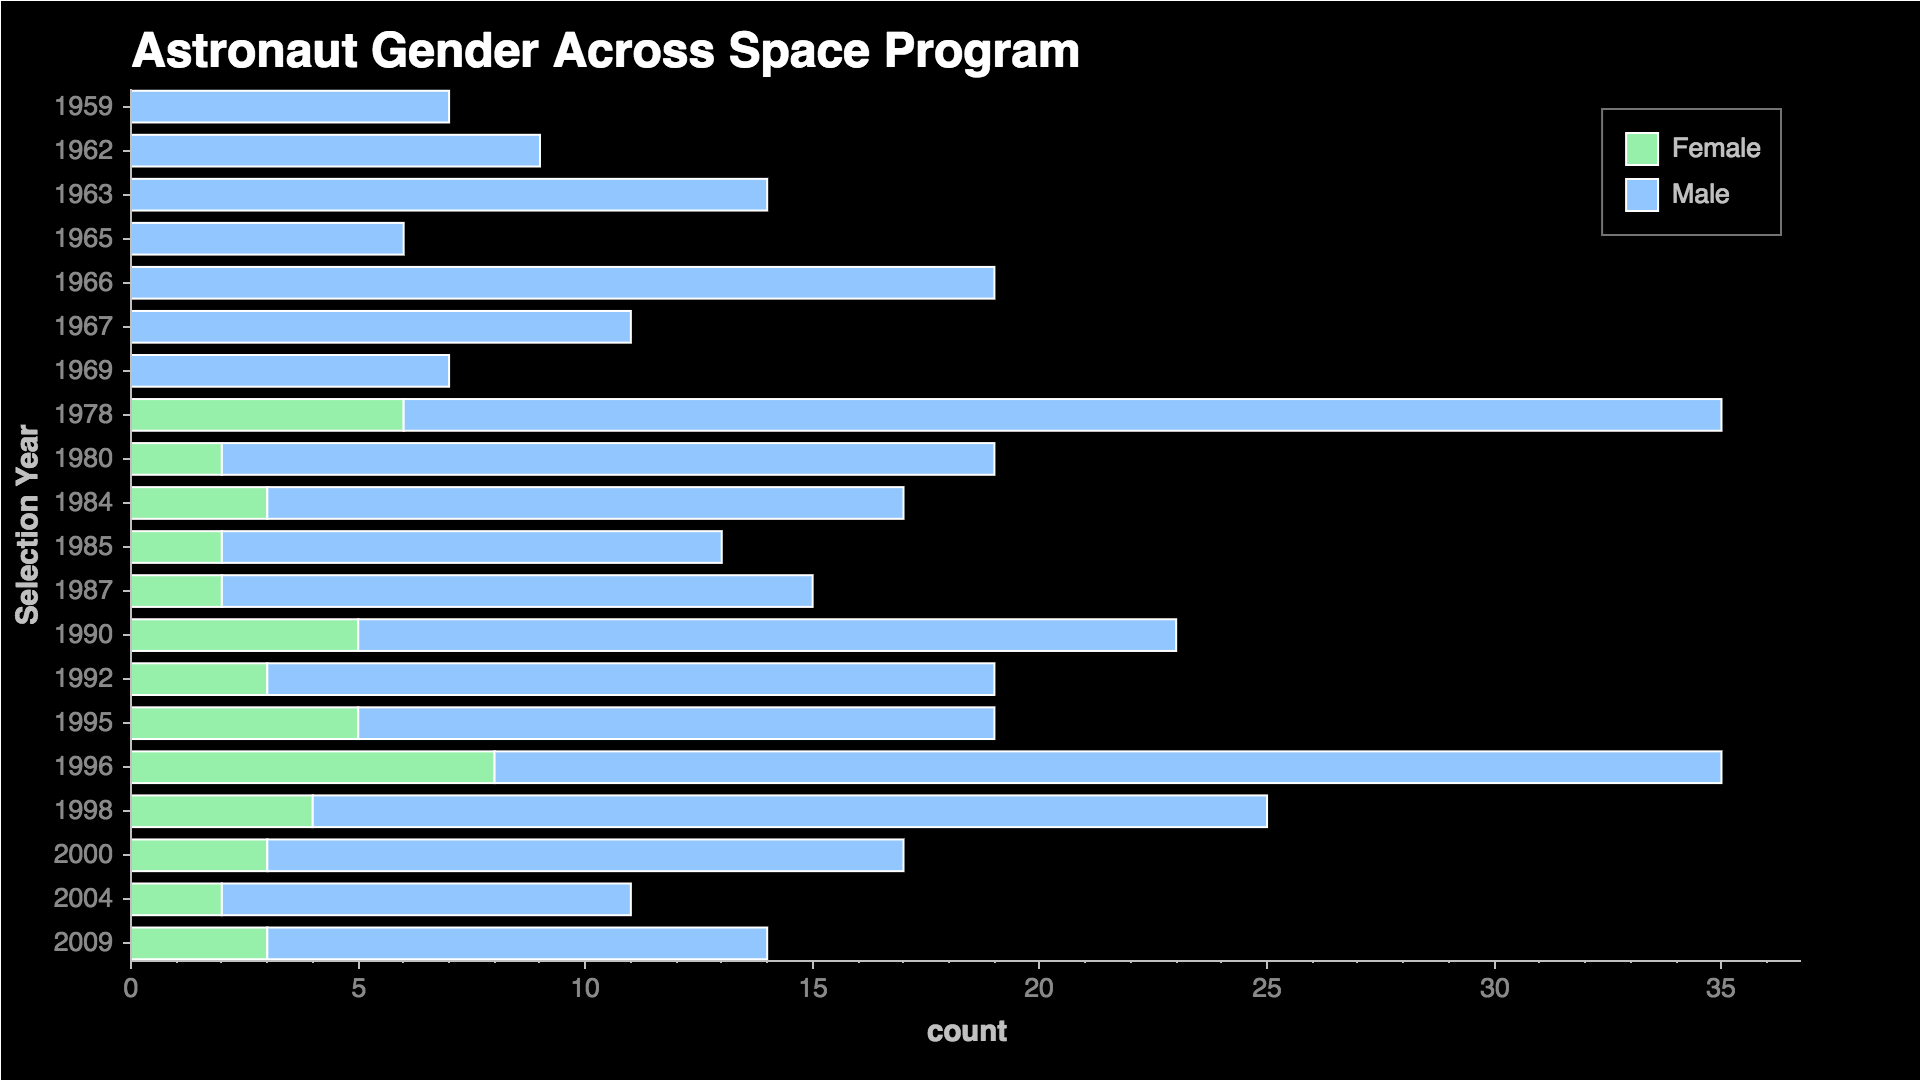 Gender across Space Program